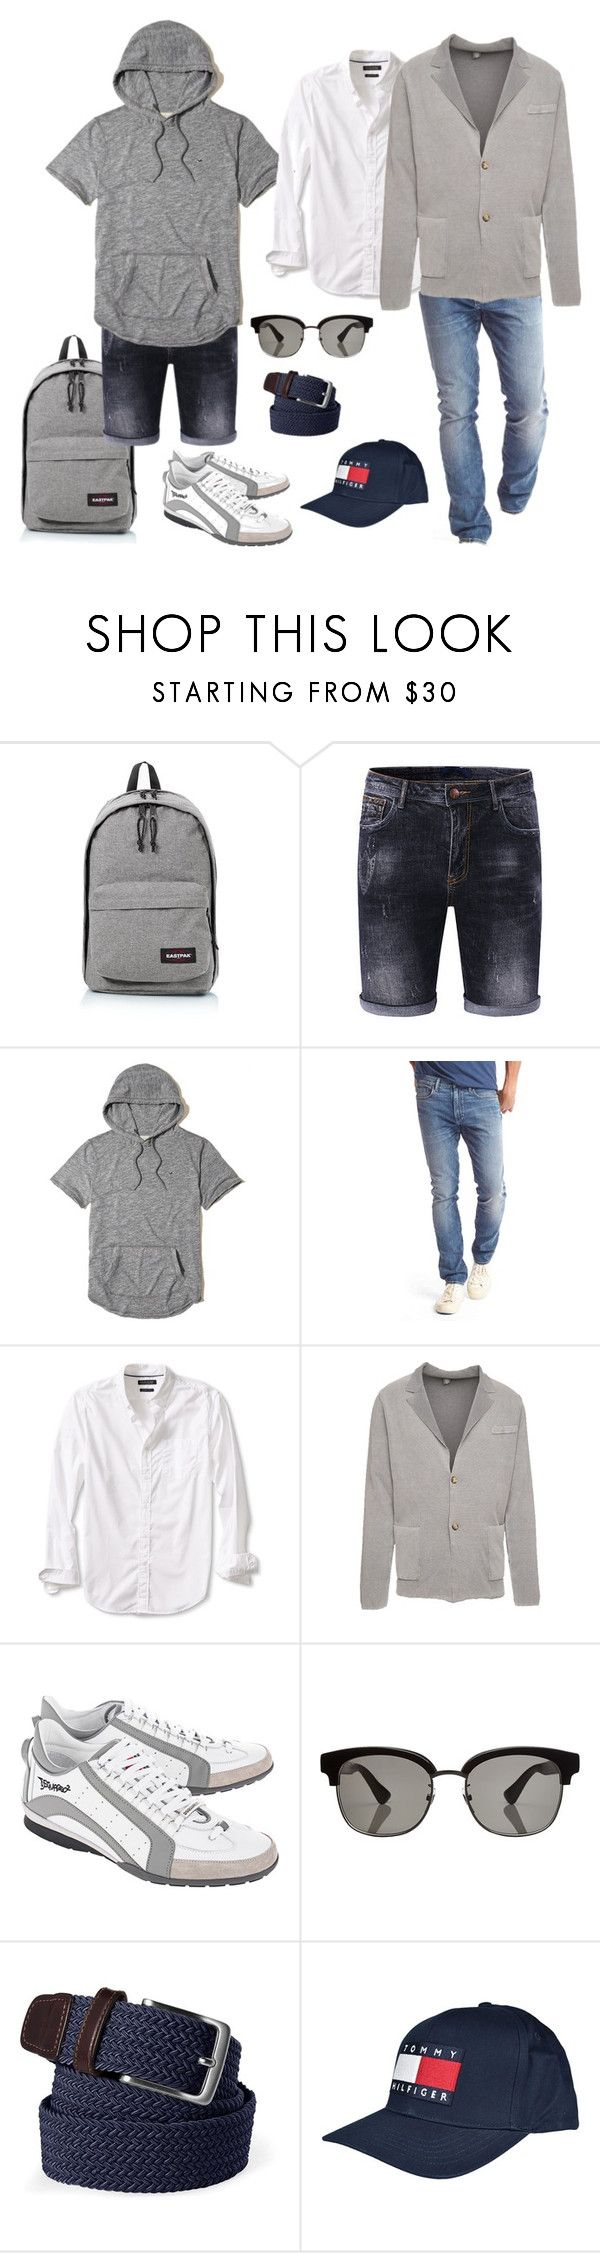 Комплект для выходных by repriza on Polyvore featuring Eastpak, Dsquared2, Eleventy, Gucci, Gap, Banana Republic, Tommy Hilfiger, Lands' End and Hollister Co.